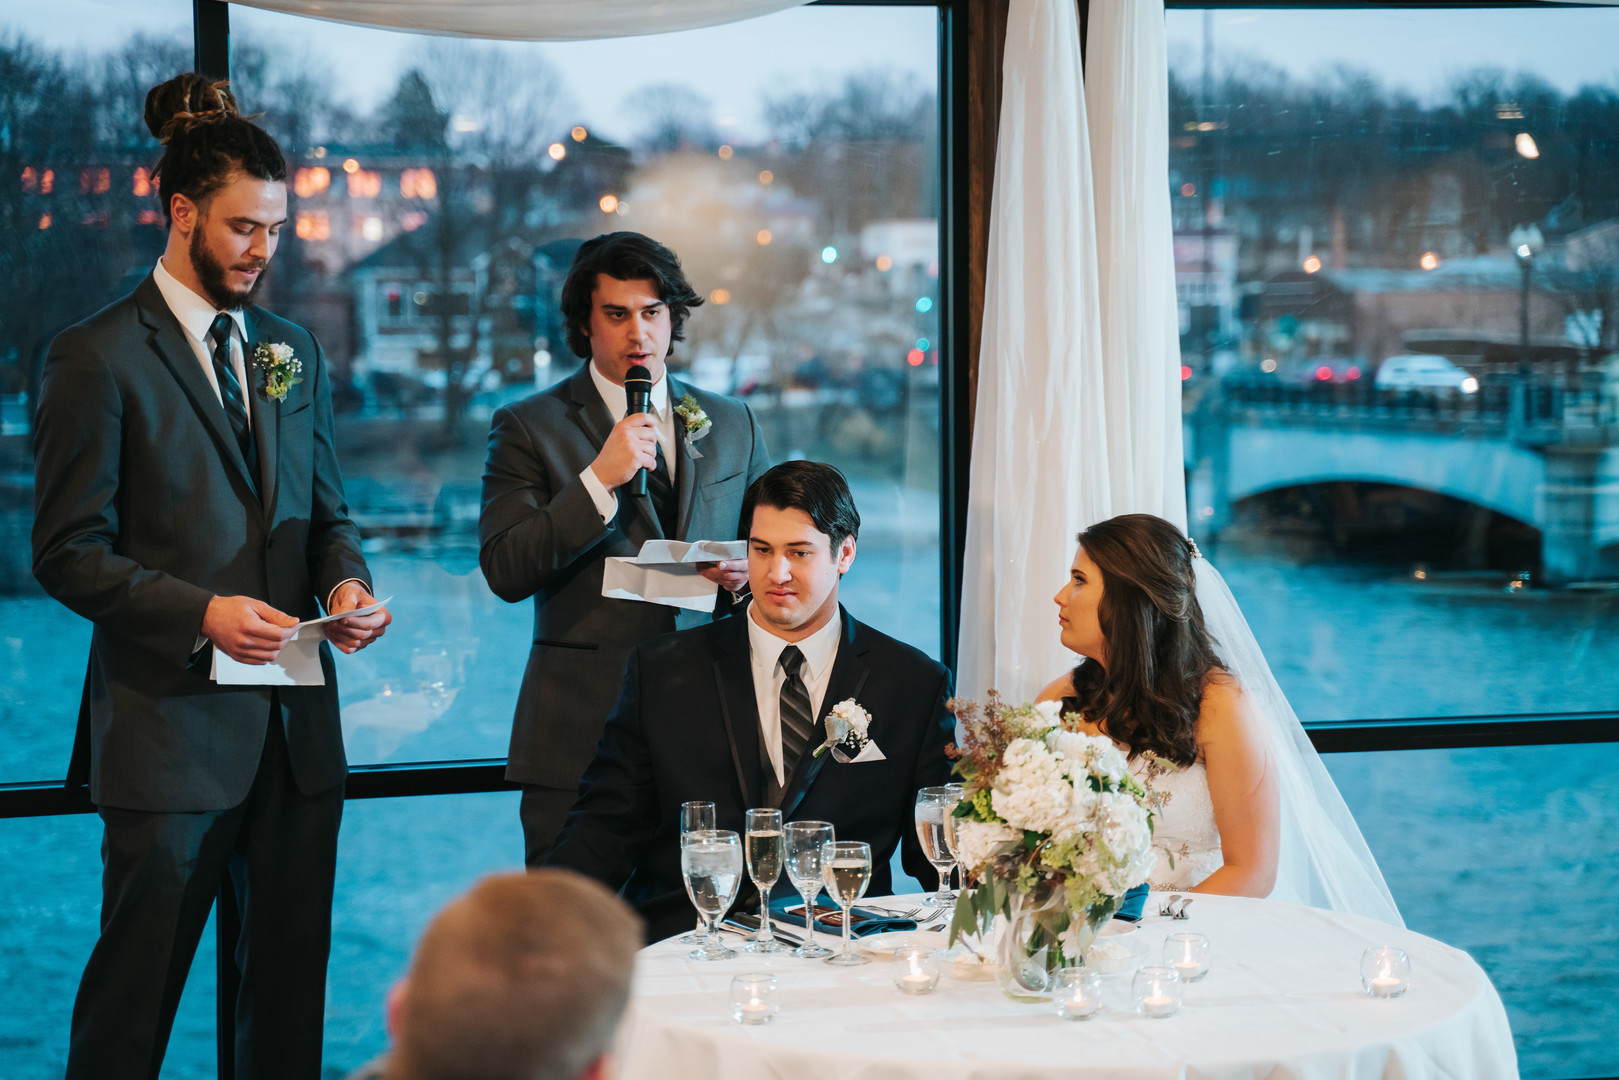 Best man speeches: Beautiful Illinois wedding at Riverside Receptions captured by Windy City Production. See more wedding ideas at CHItheeWED.com!